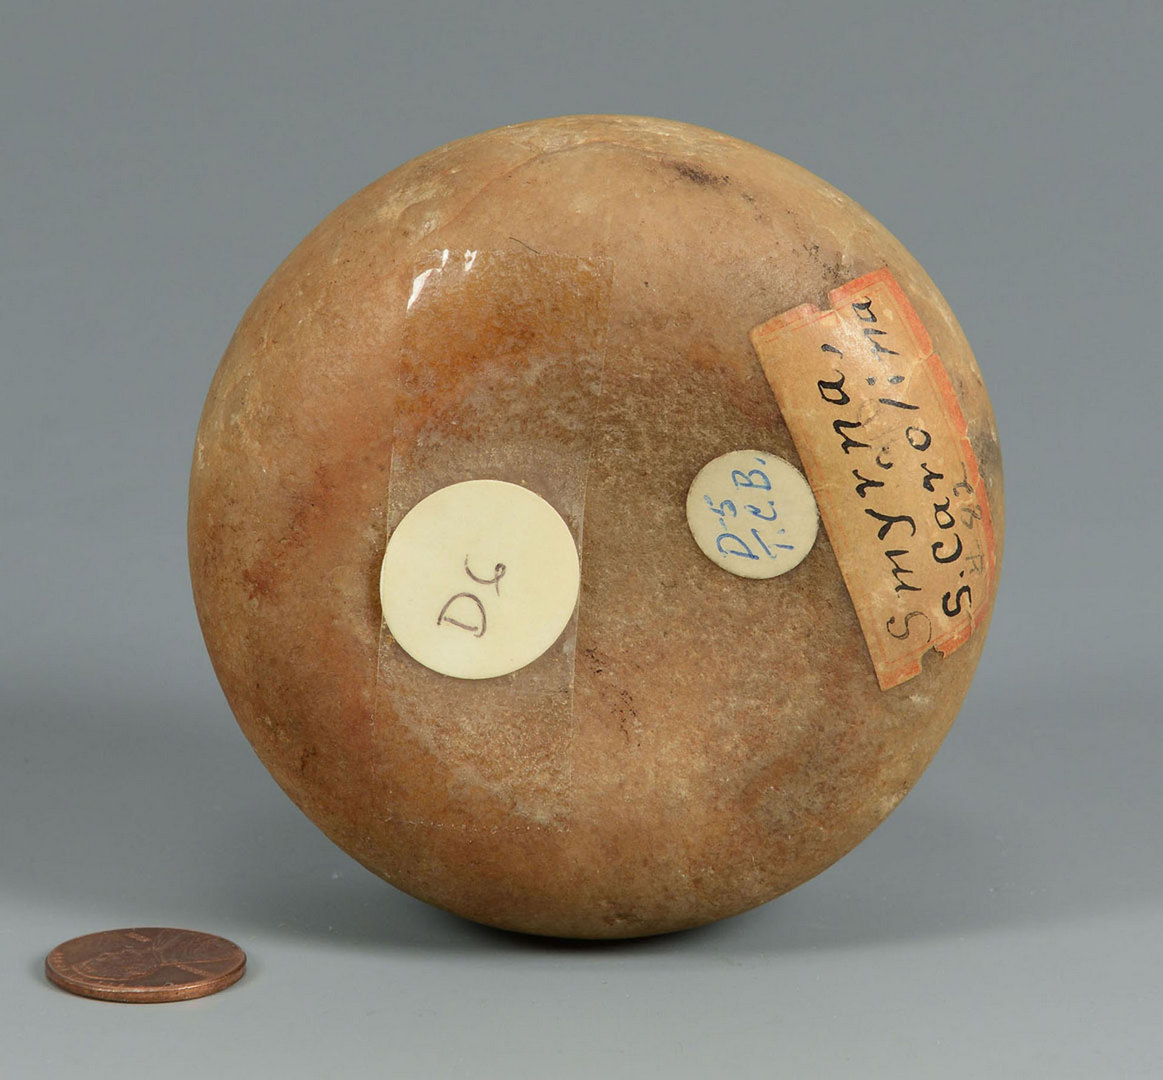 Lot 642: Mississippian Quartz Biscuit Discoidal